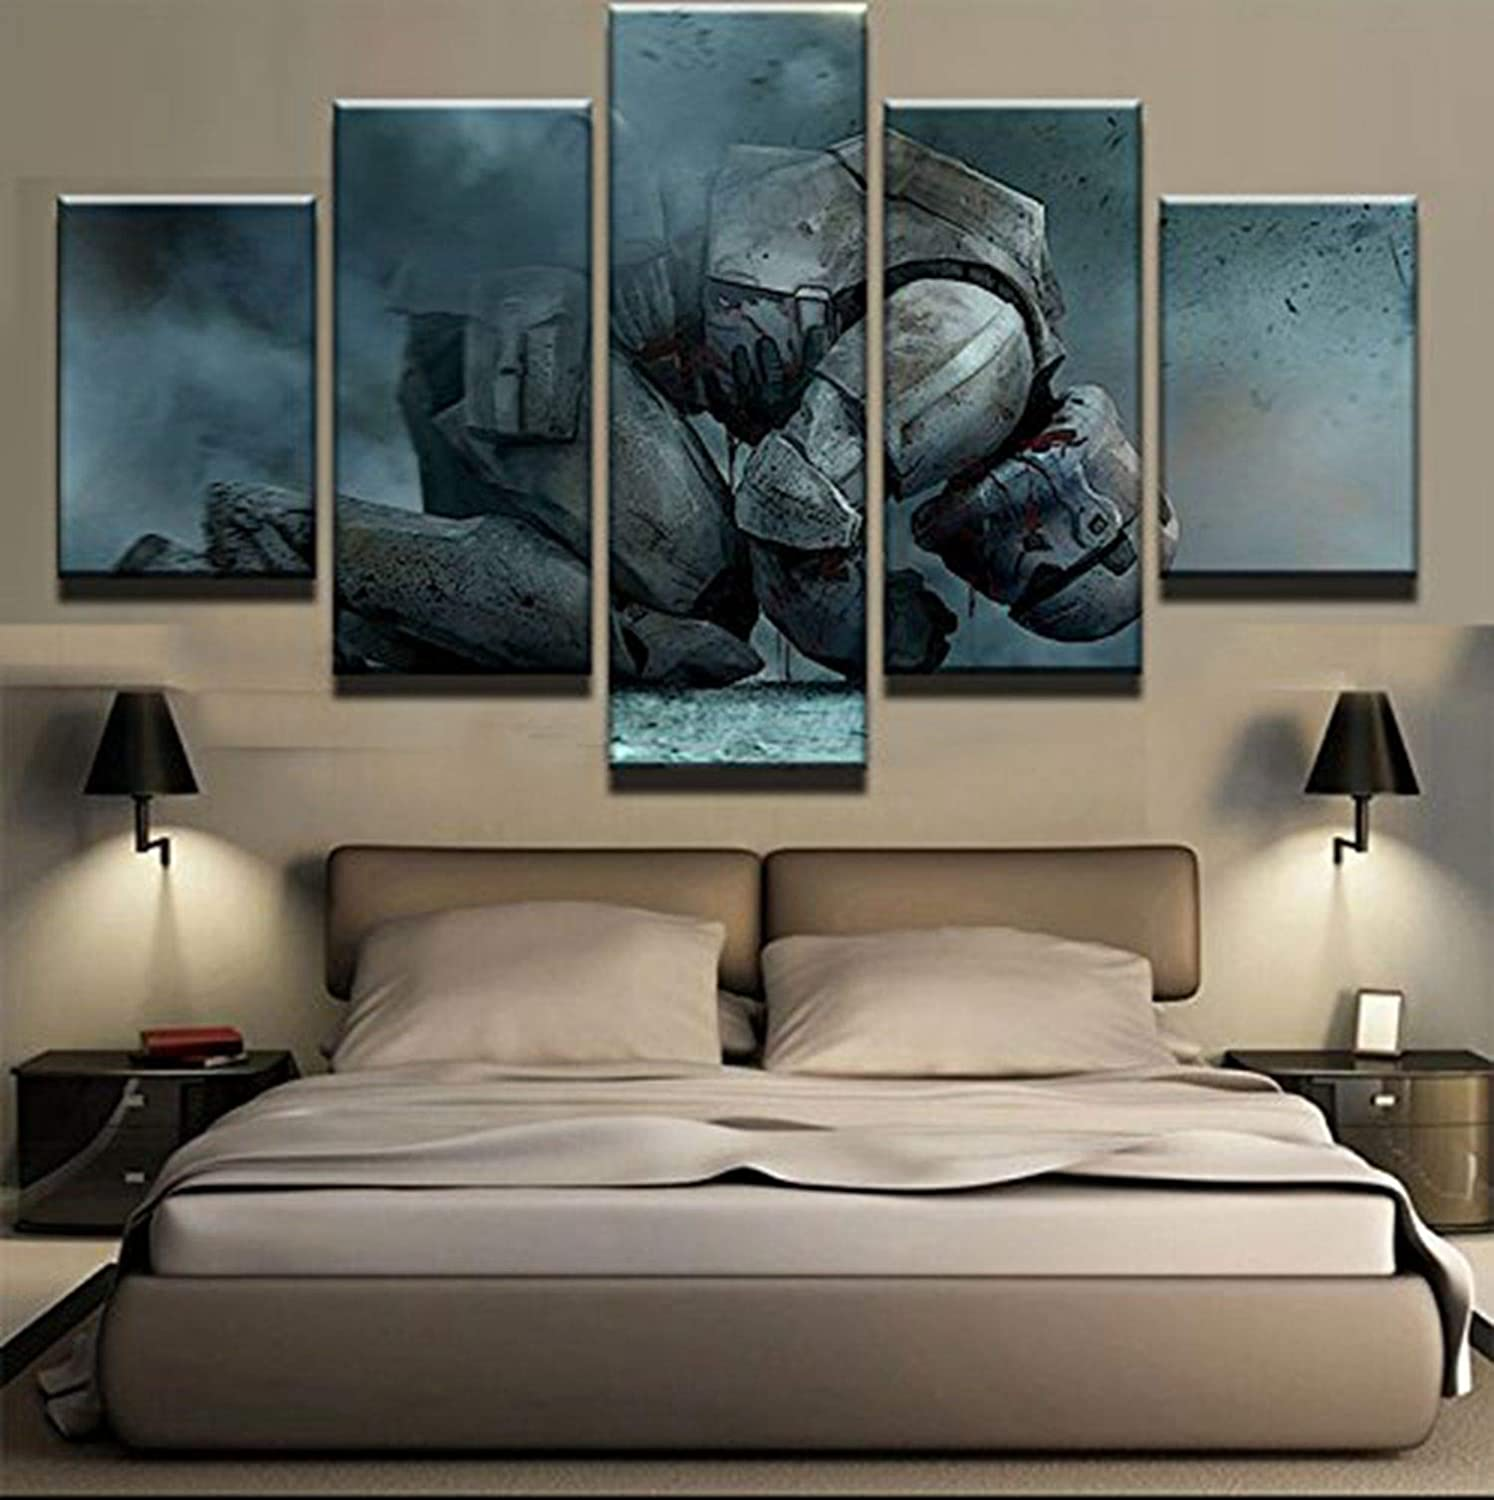 JESC 5 Panel Kneeling White Soldiers Painting Canvas Wall Art Picture Home Decor Living Room Canvas Print Modern Painting